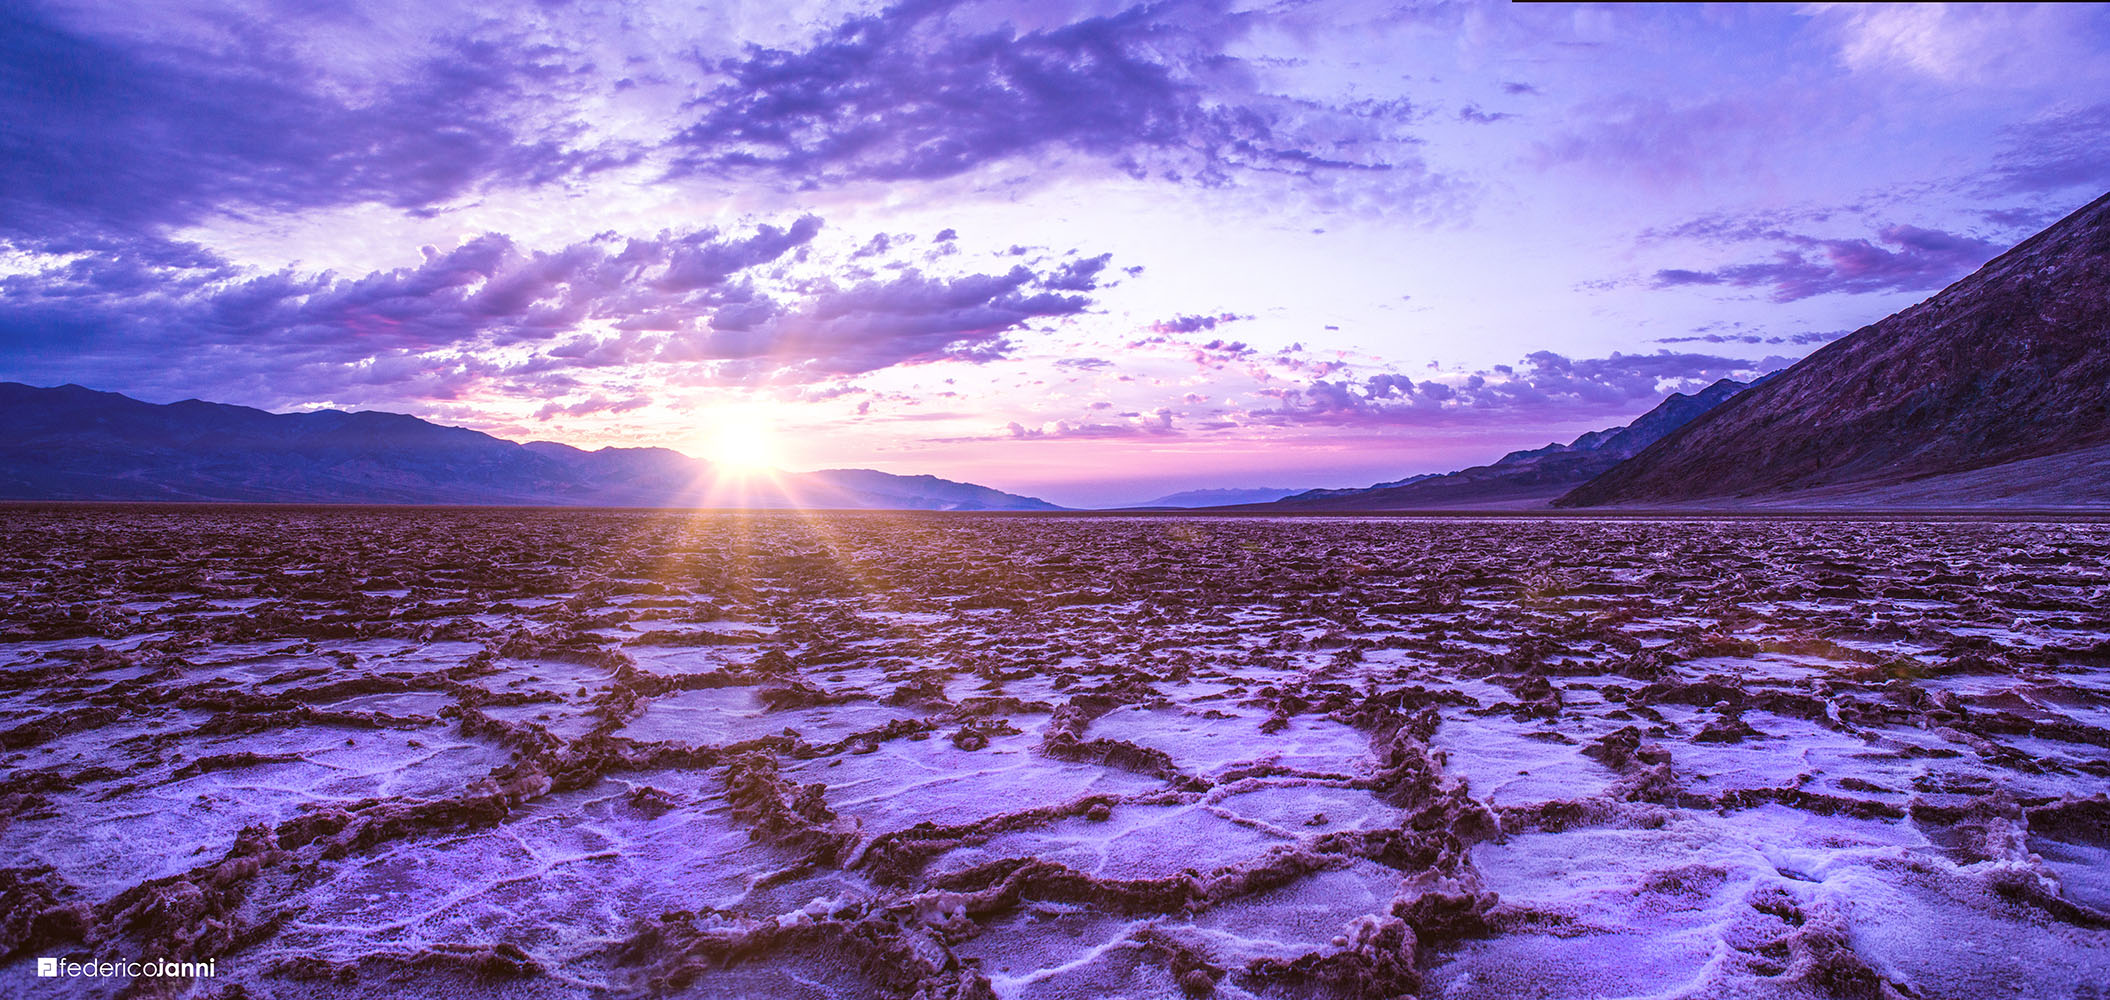 Death Valley, California, United States.